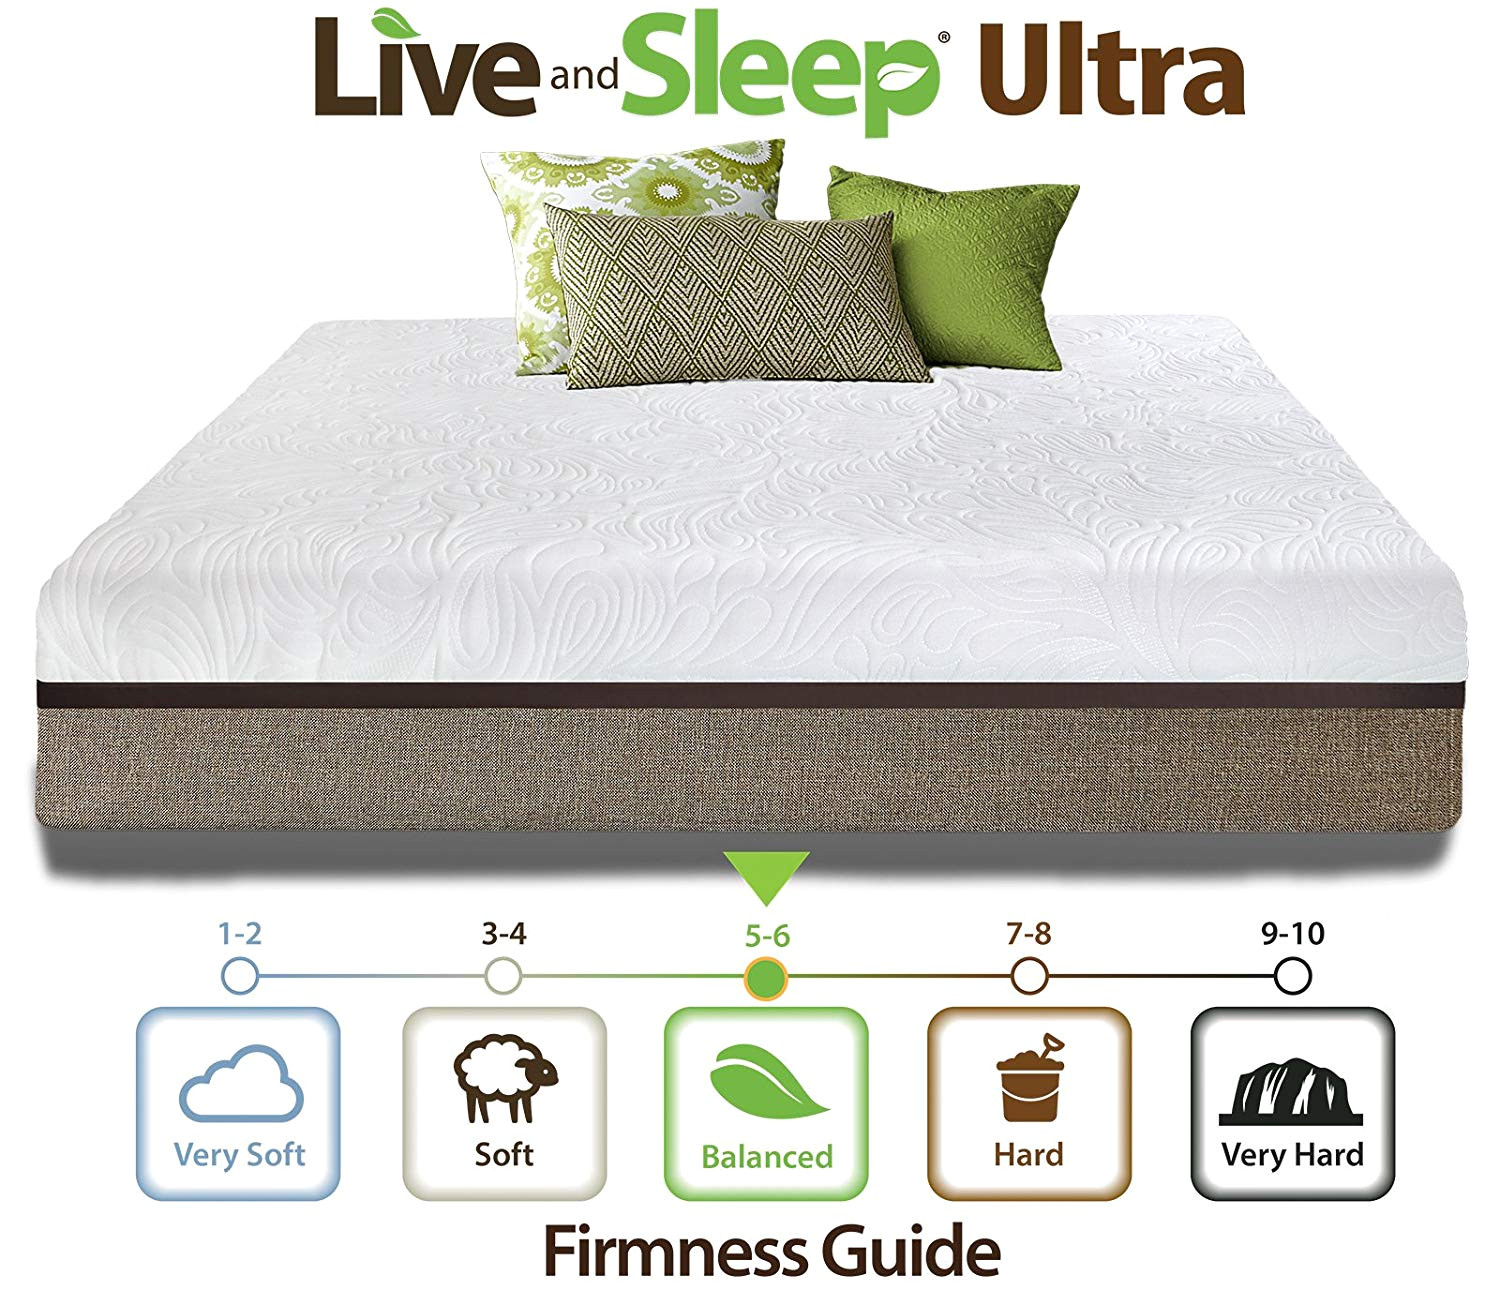 amazon com live sleep ultra king mattress gel memory foam mattress 12 inch king size medium firm bed in a box bonus luxury form pillow certipur